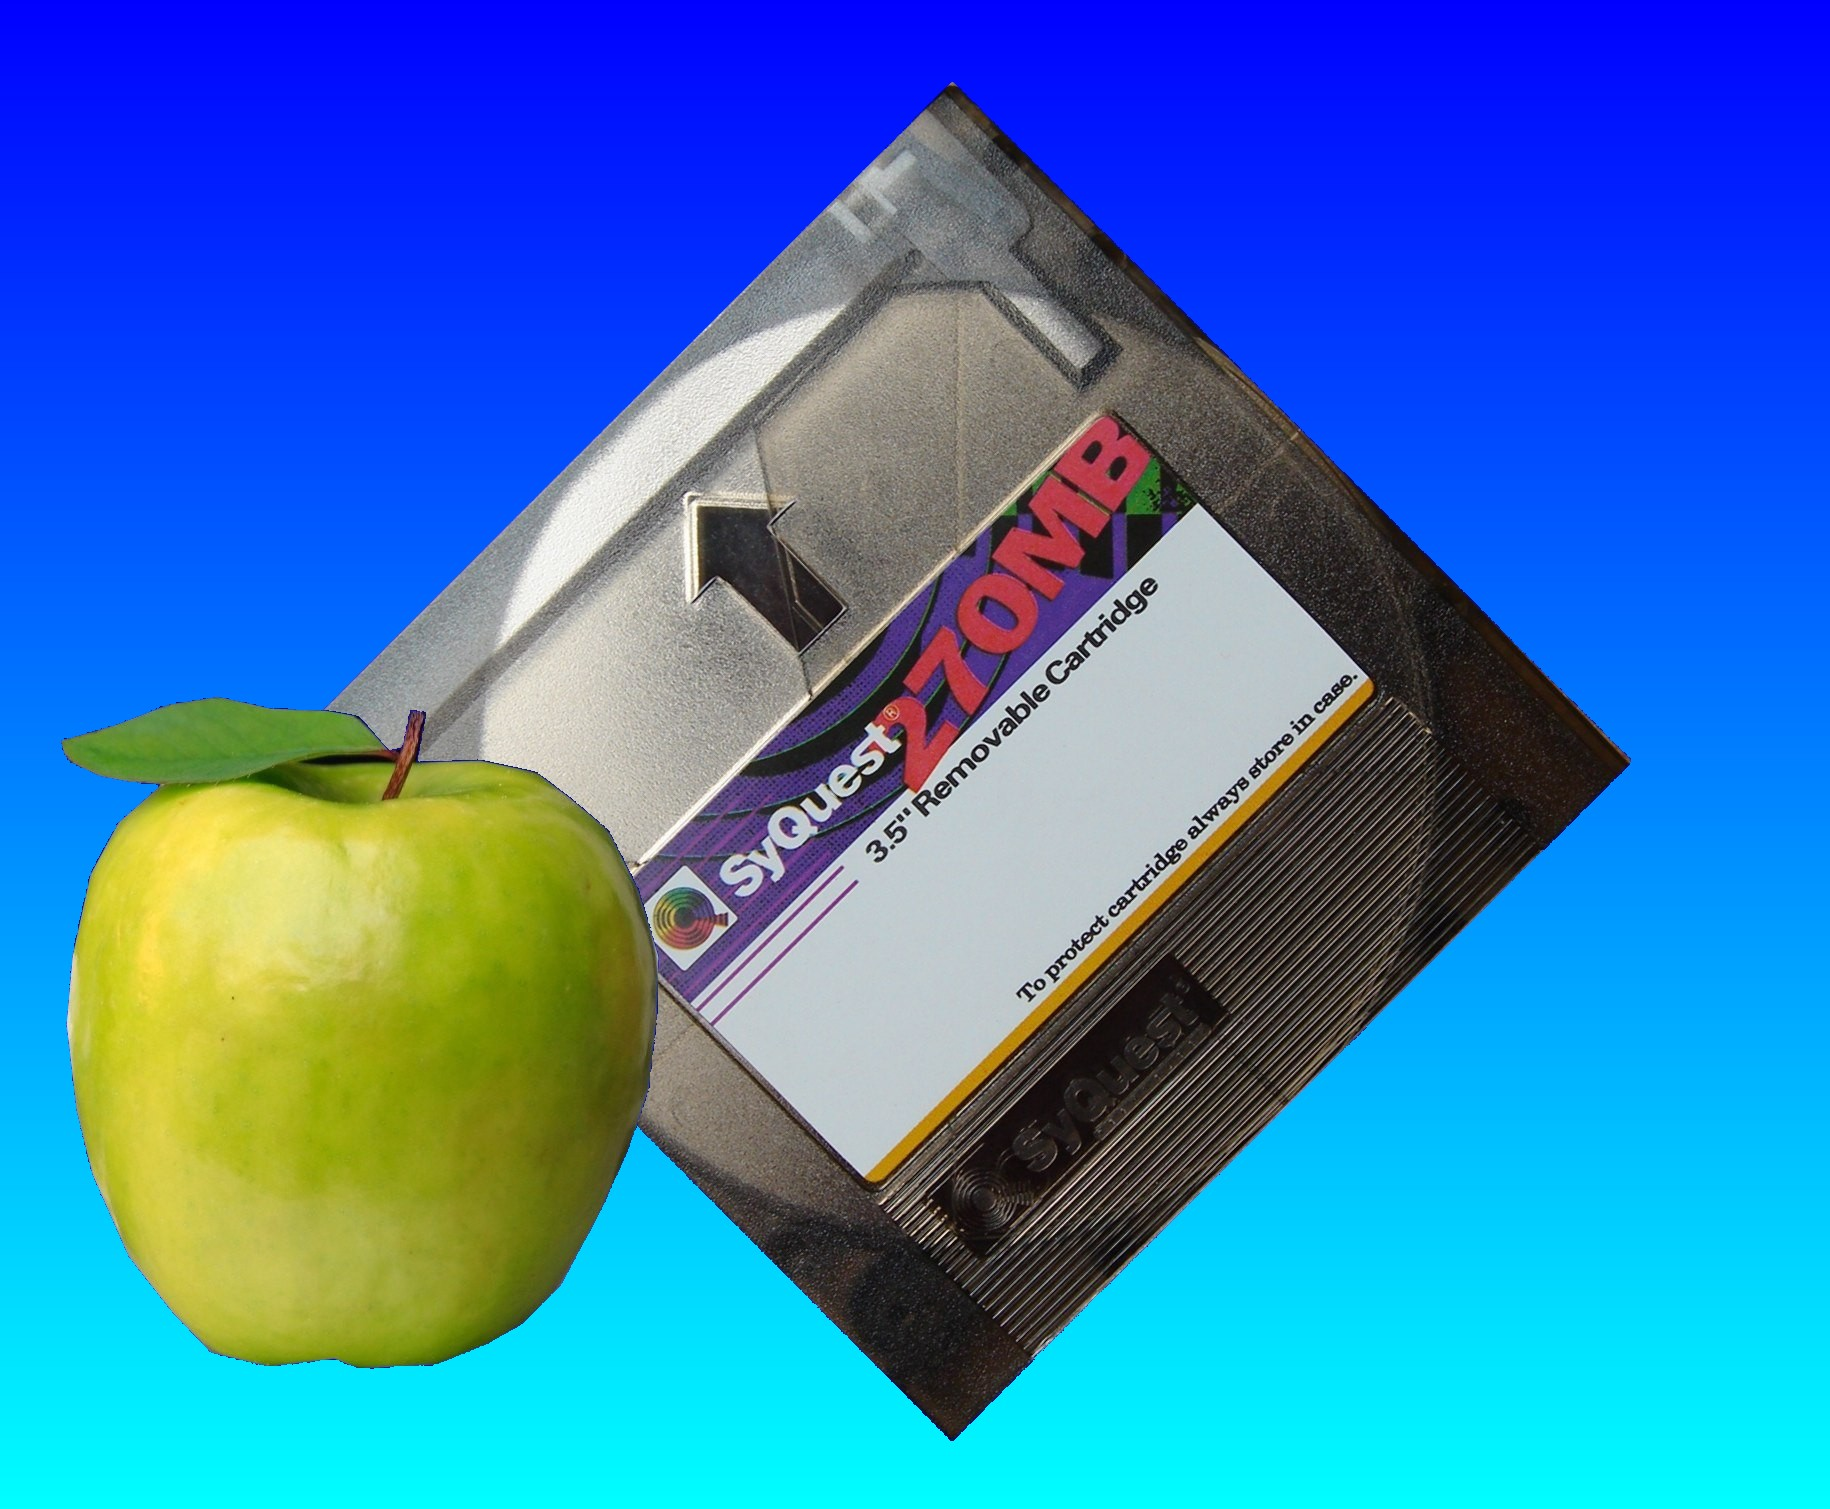 A Syquest disk that has been used in an Apple Mac. This particular disk is 230mb as used in the EZFlyer drives.